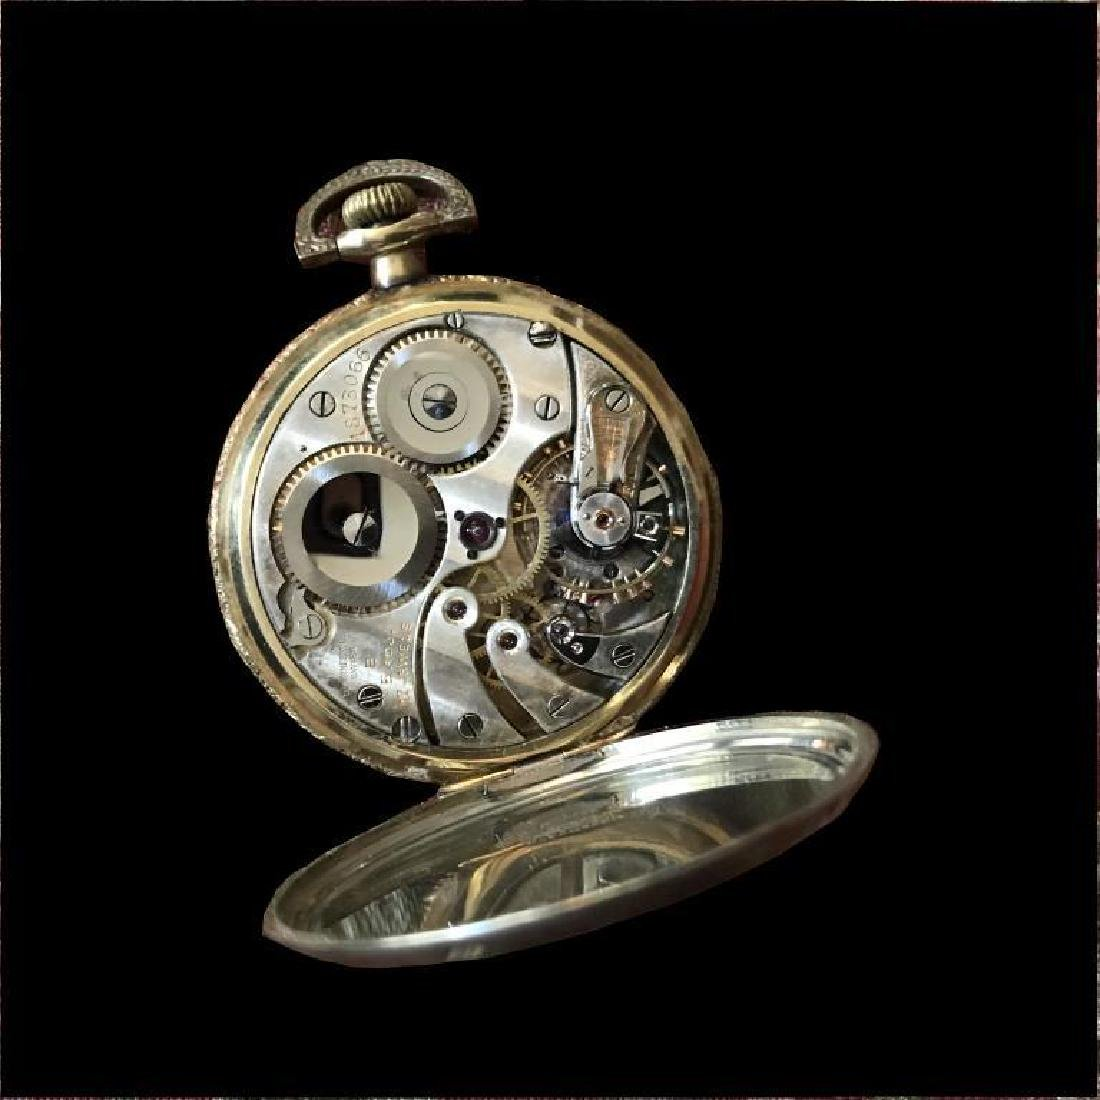 1905 Longines 17 Jewels Gold Filled Pocket Watch - 4